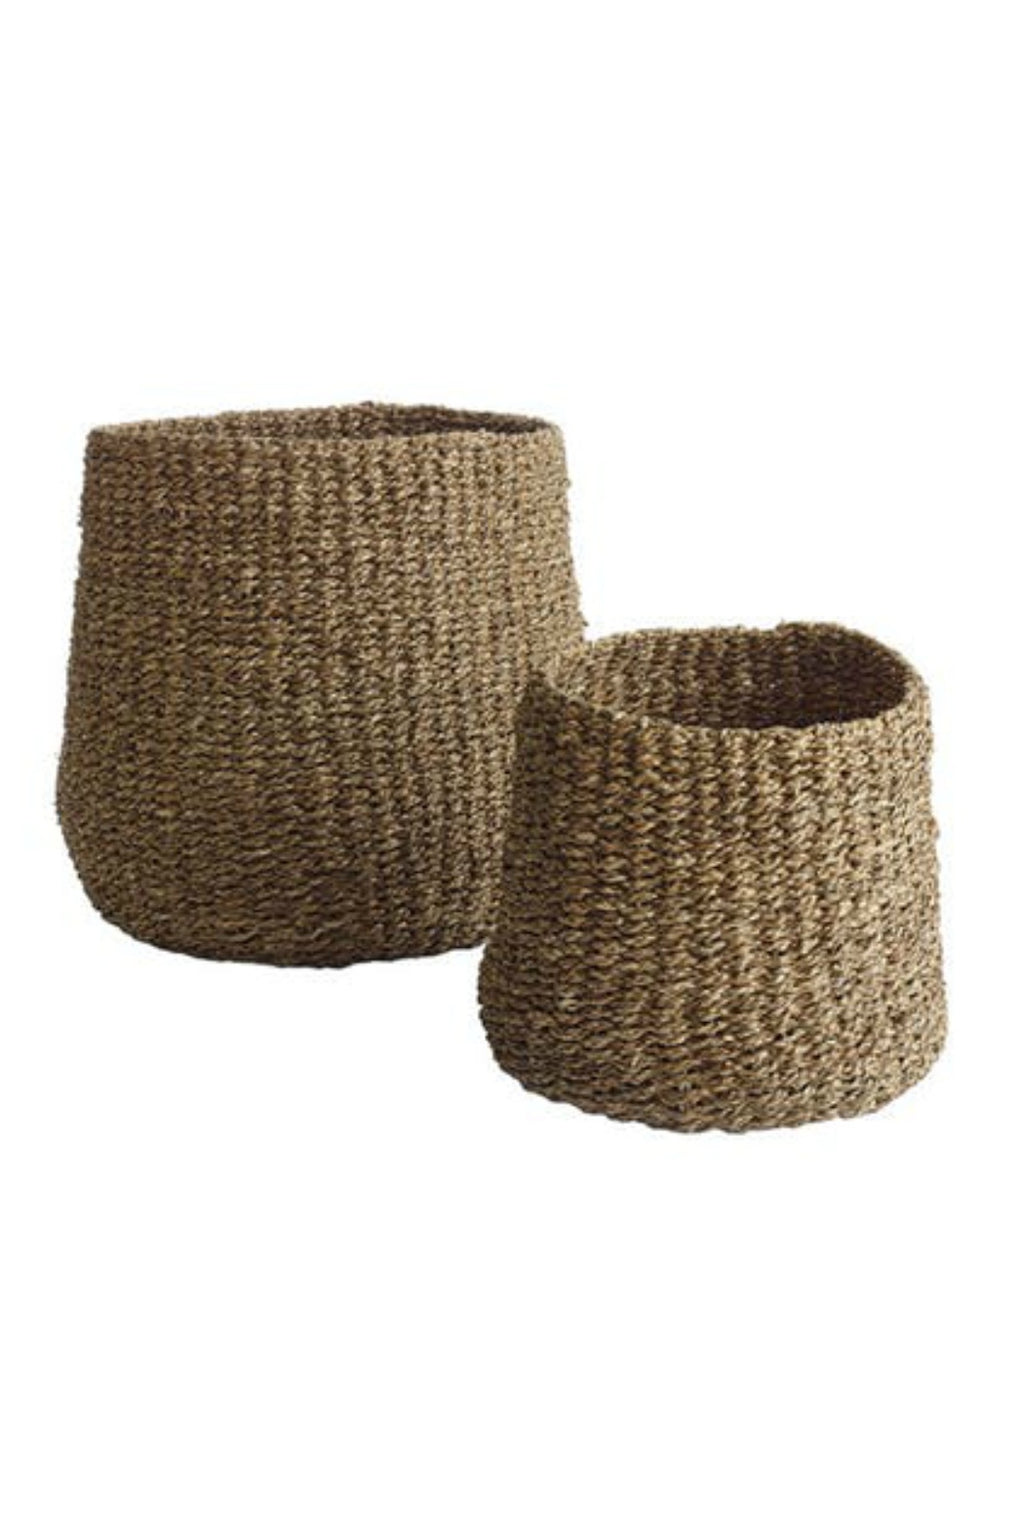 Texture by Design Ideas Stonington Basket